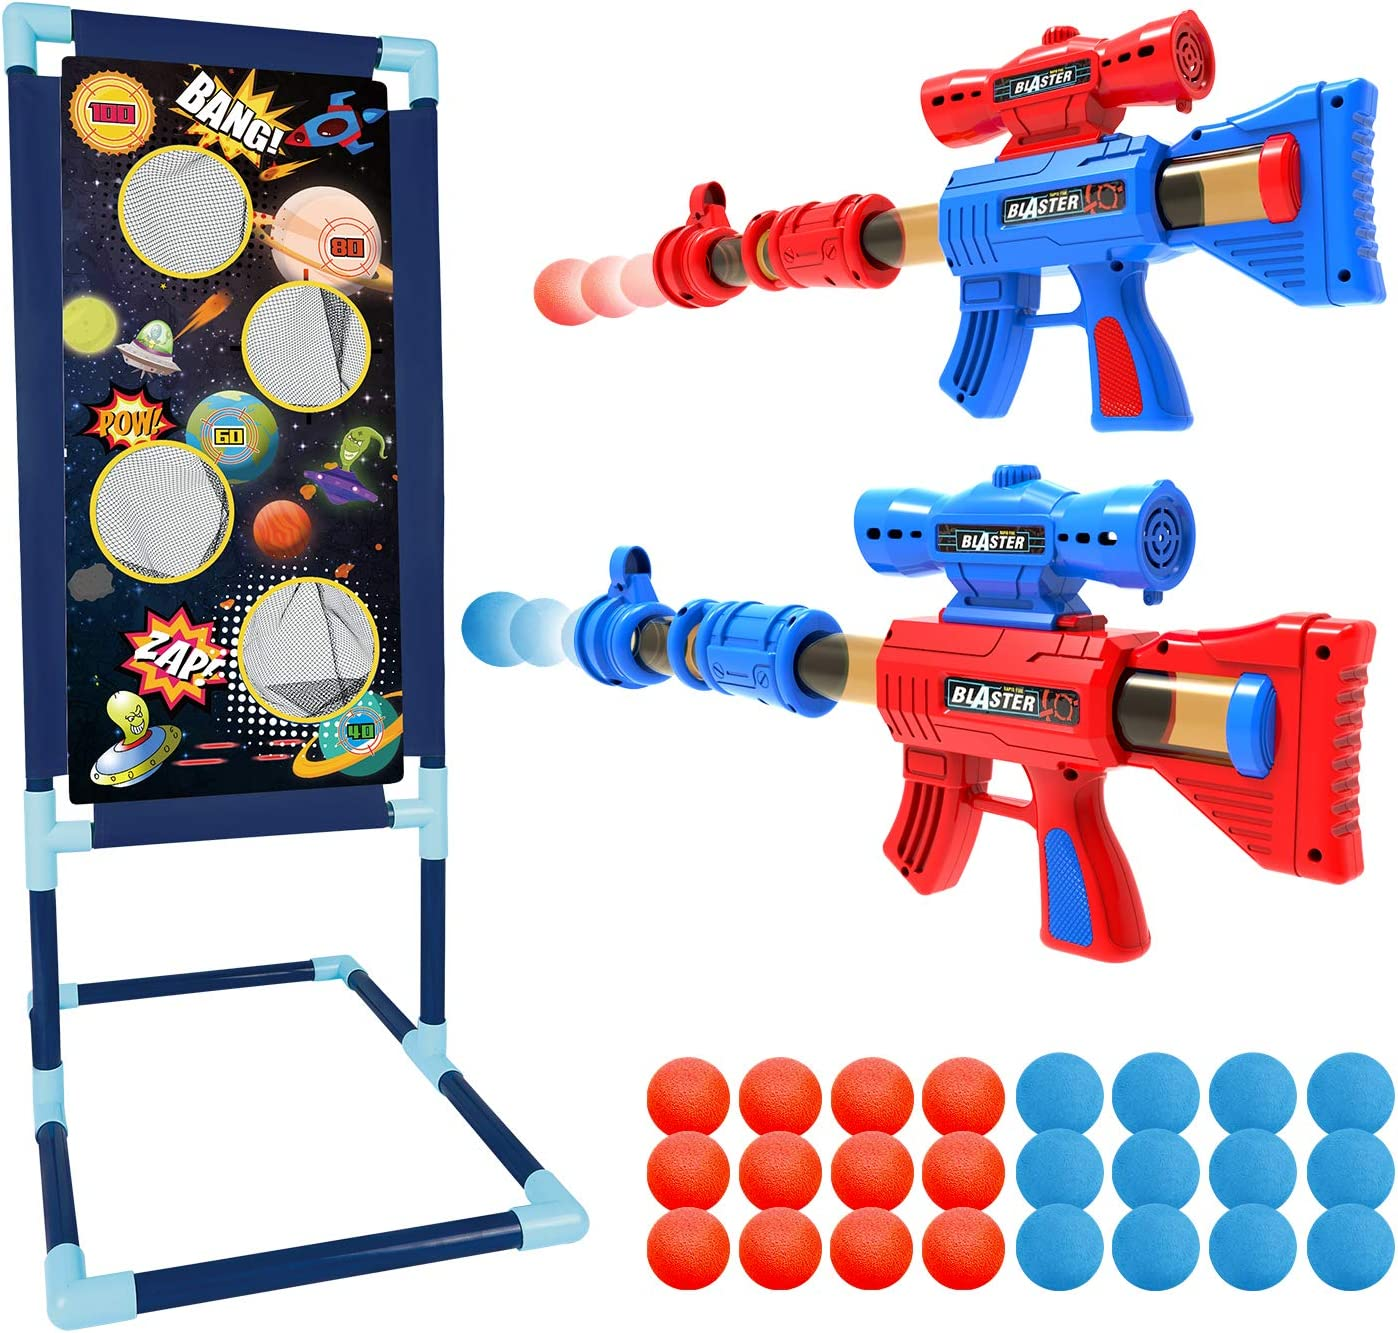 Shemira Shooting Game Toy for 5 6 7 8 9 10+ Years Olds Boys and Girls,2pk Foam Ball Popper Air Guns & Shooting Target & 24 Foam Balls - Ideal Gift -Space War Theme- Compatible with Nerf Toy Guns